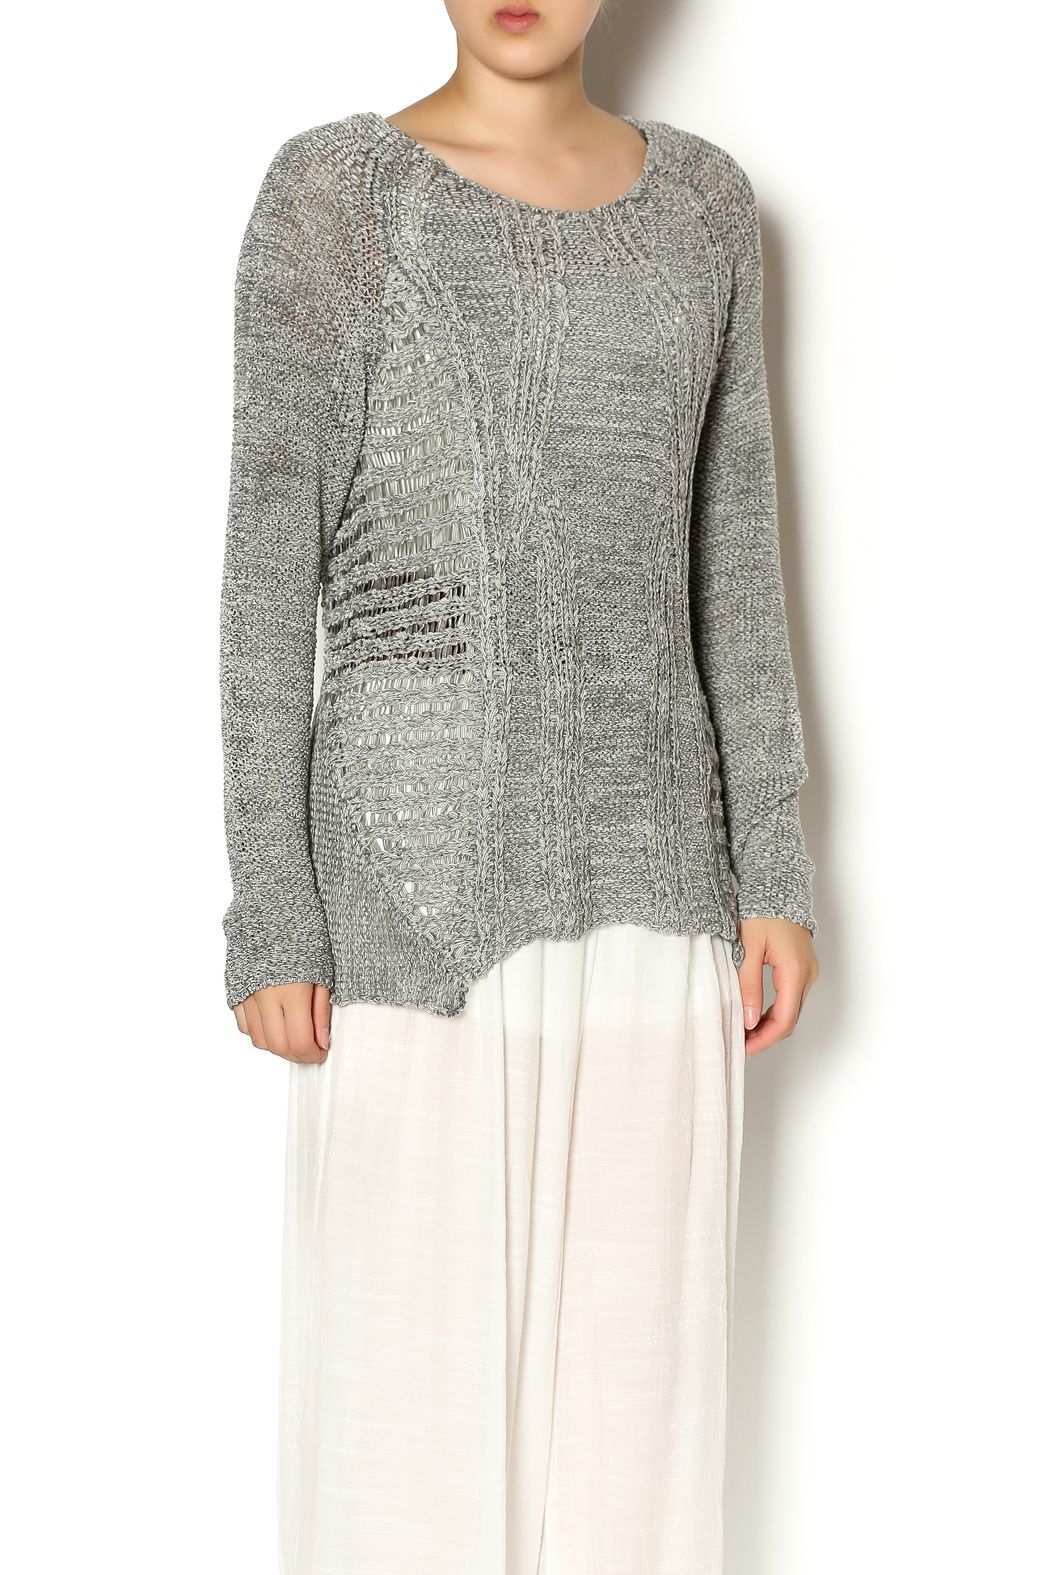 Katherine Barclay Gray Knit Sweater - Front Cropped Image